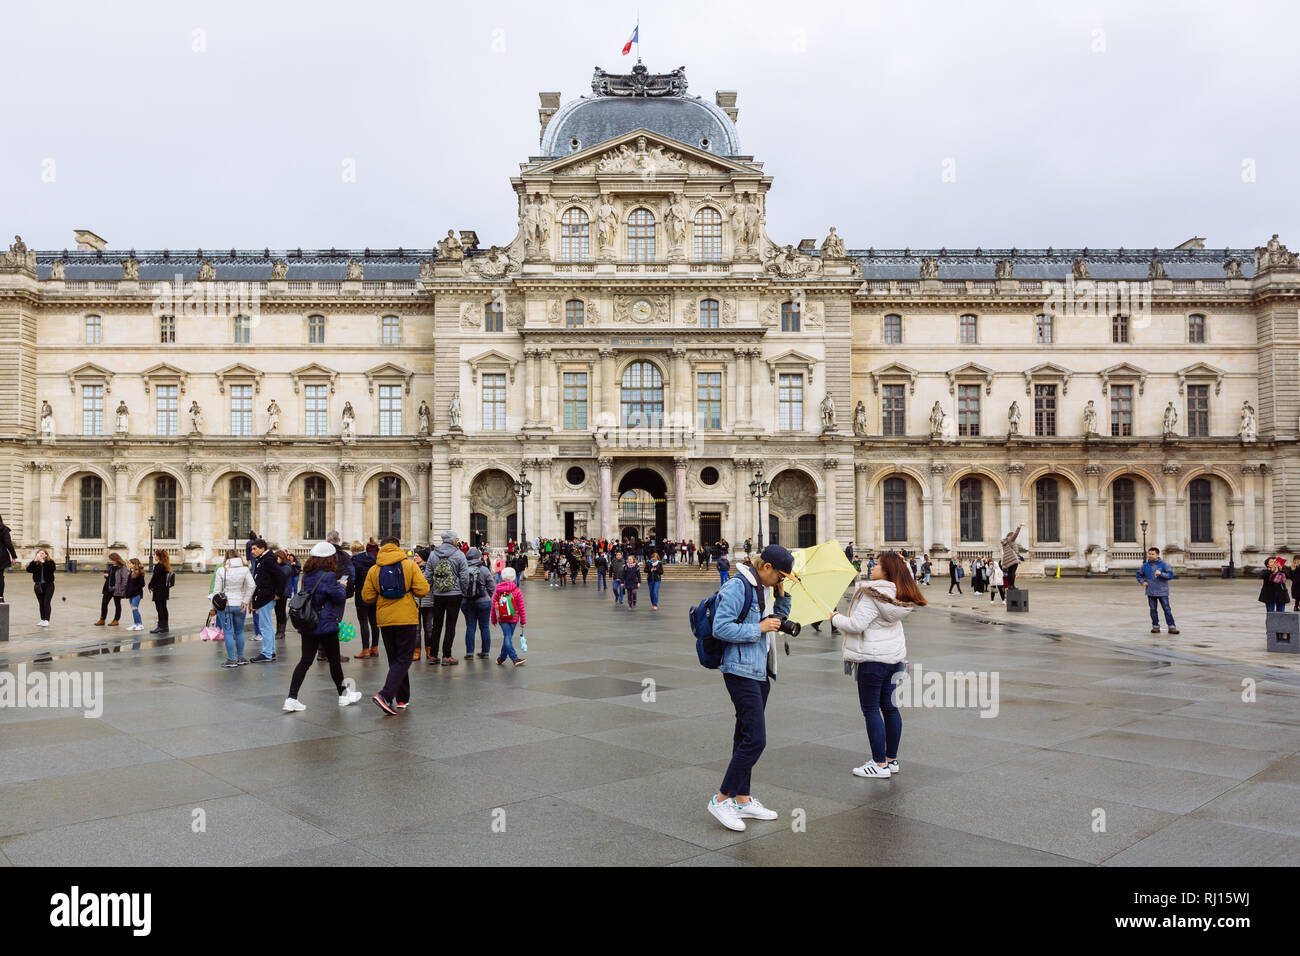 PARIS, FRANCE - NOVEMBER 10, 2018 - View of famous Louvre Museum in a winter and rainy day. Louvre Museum is one of the largest museum worldwide Stock Photo